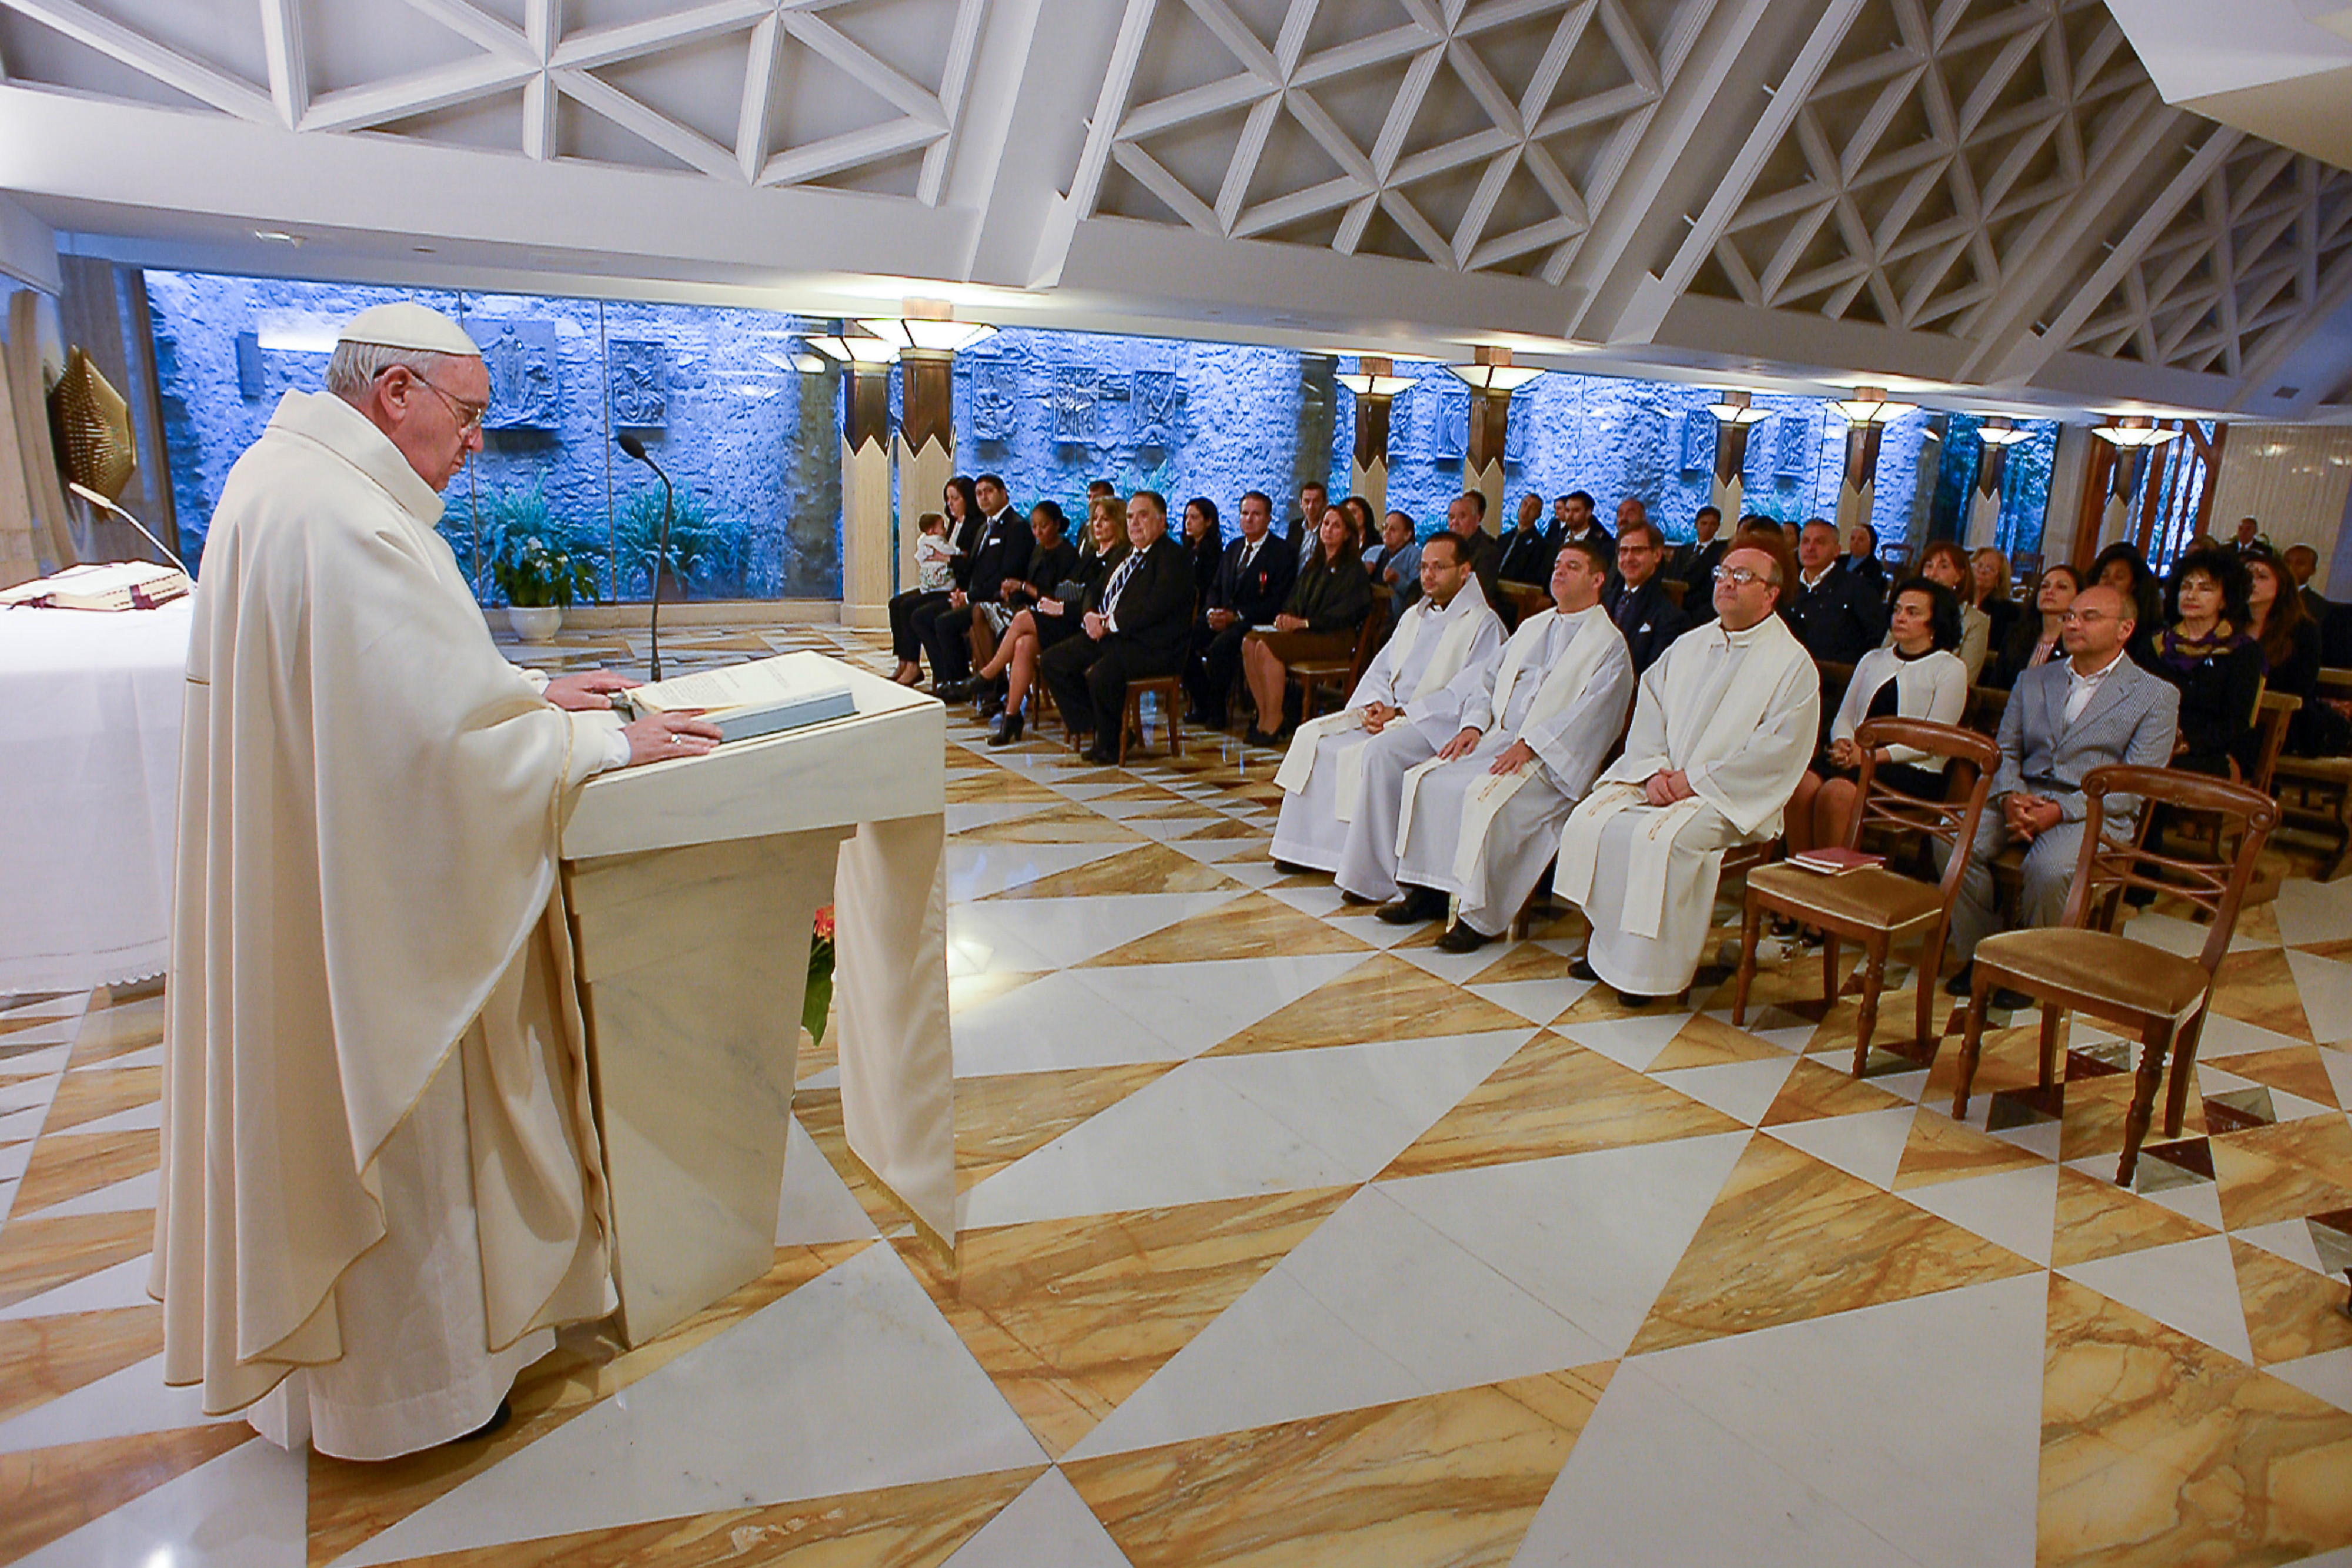 Pope Francis during Mass in Santa Marta on Monday 25th of May 2015